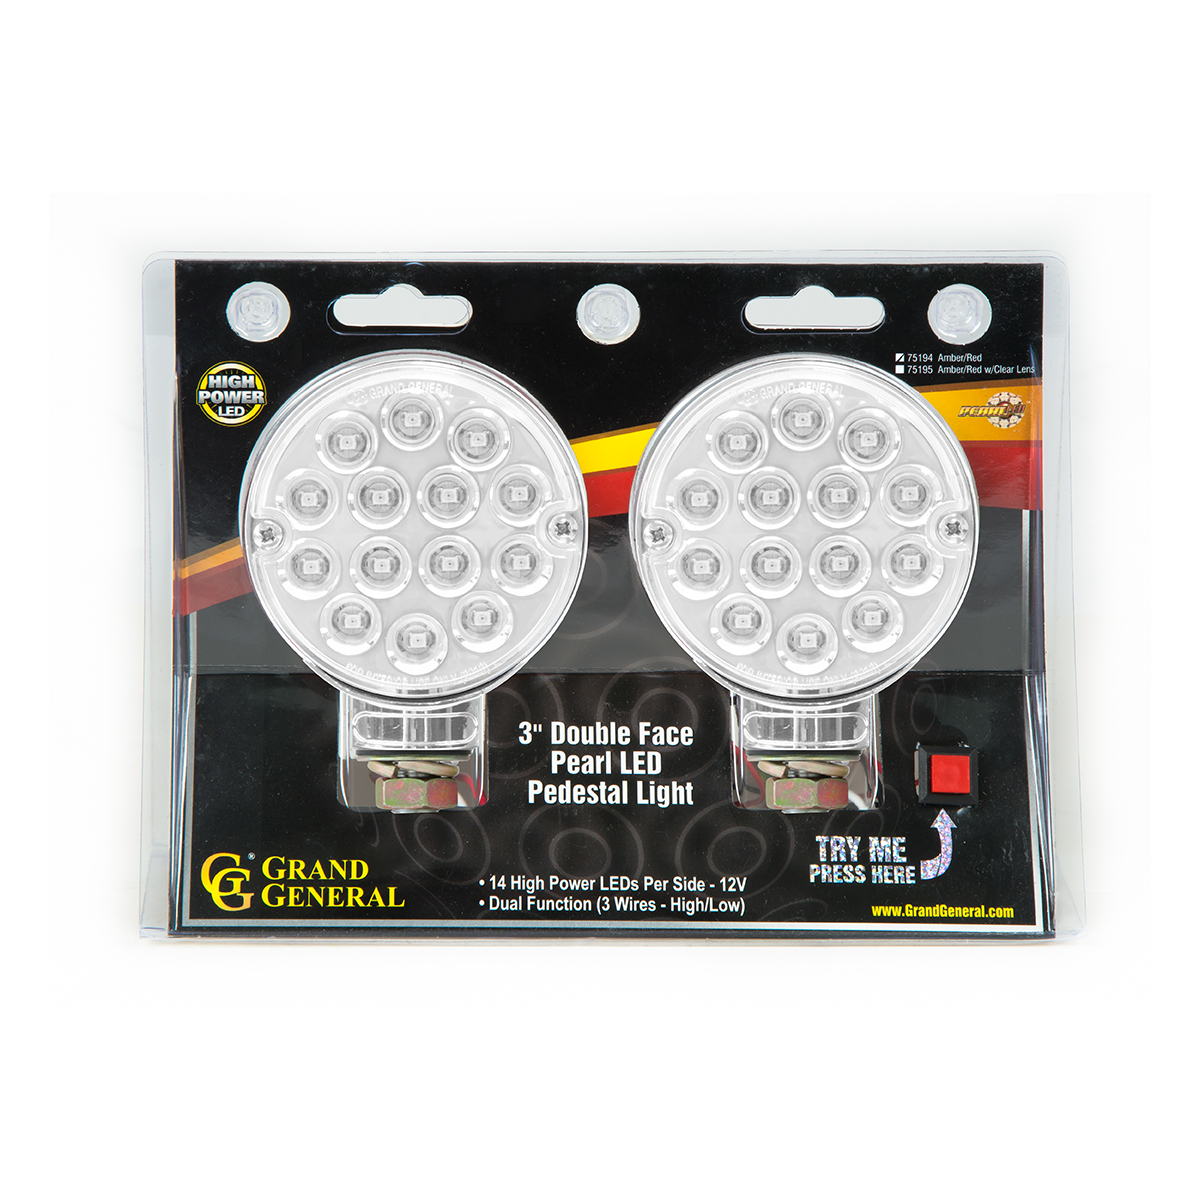 "75195 Twin Pack 3"" Double Face Pearl LED Pedestal Light"